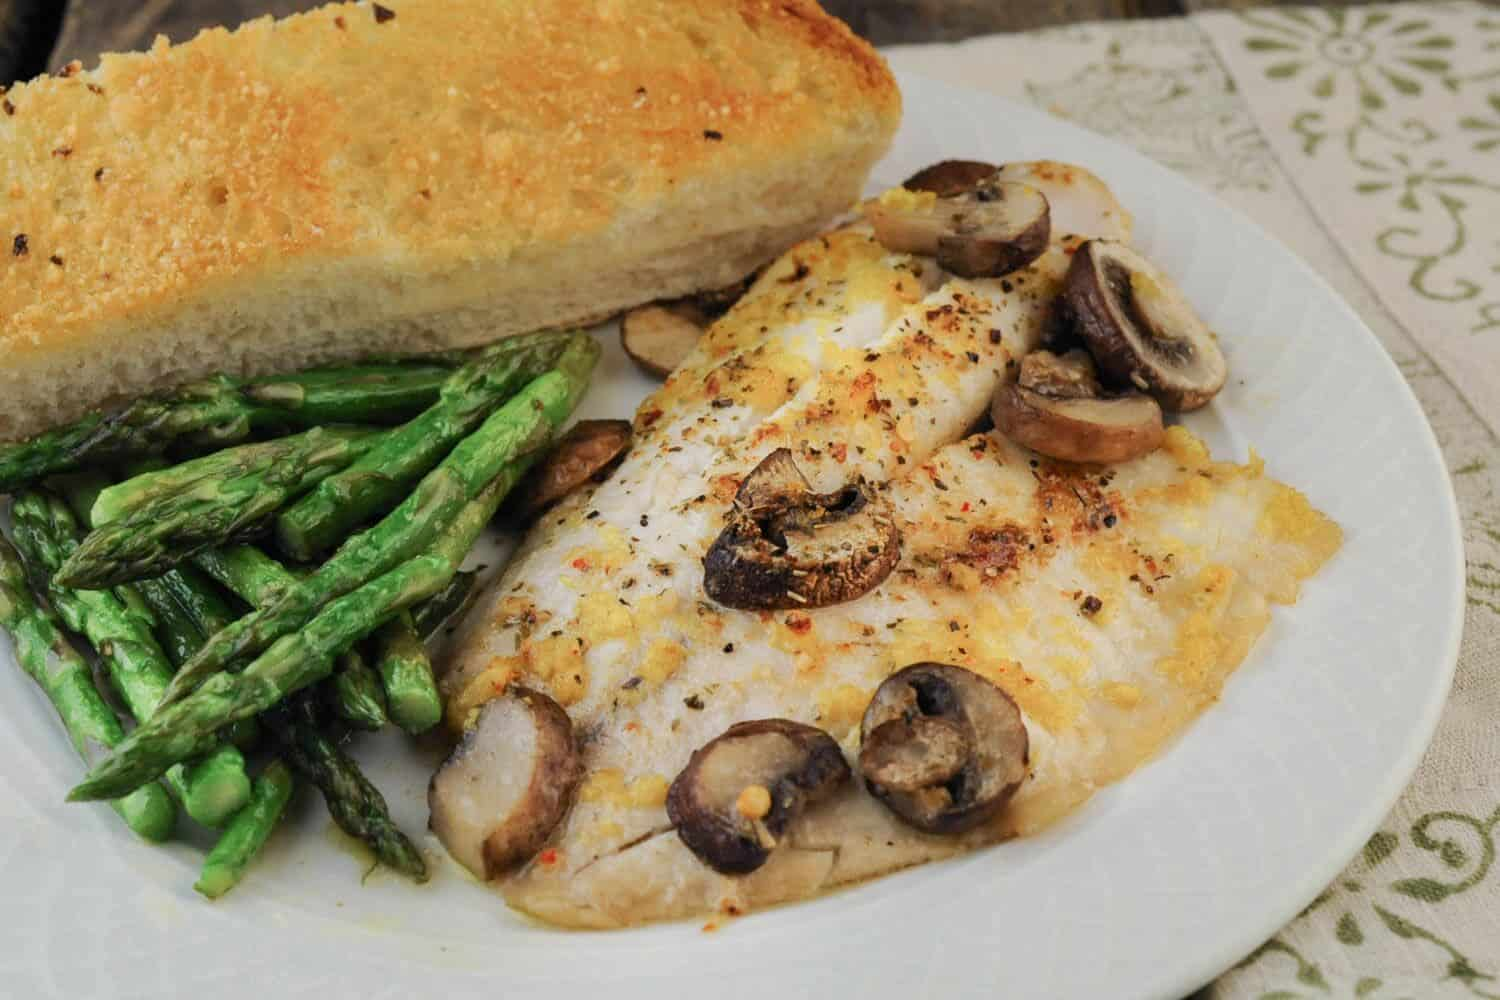 Baked Fish with Mushrooms and Italian Herbs